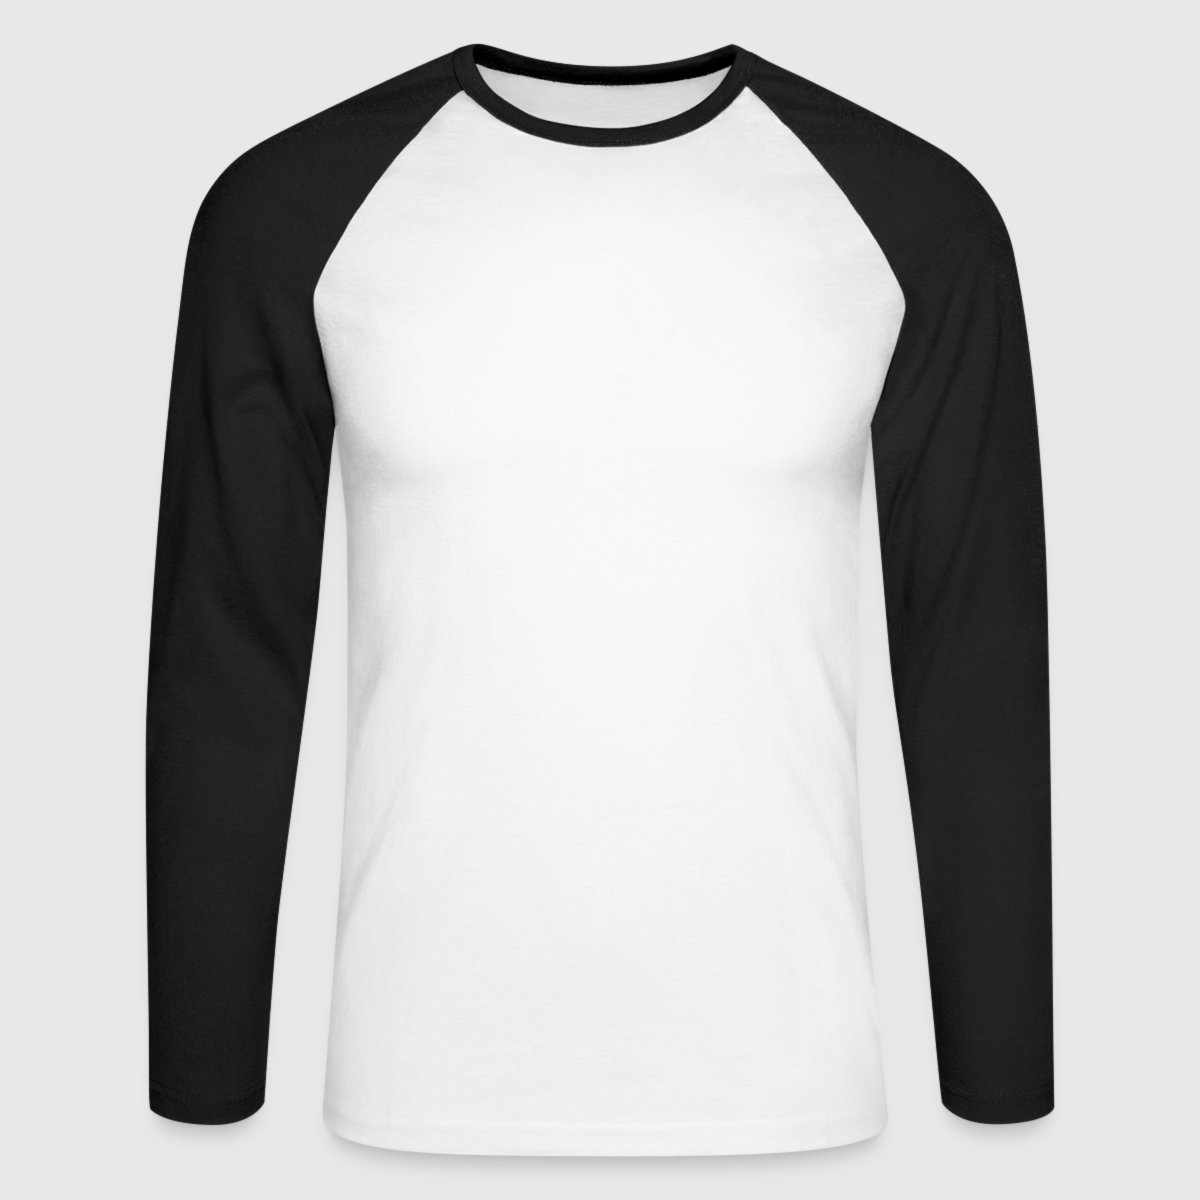 Men's Long Sleeve Baseball T-Shirt - Front